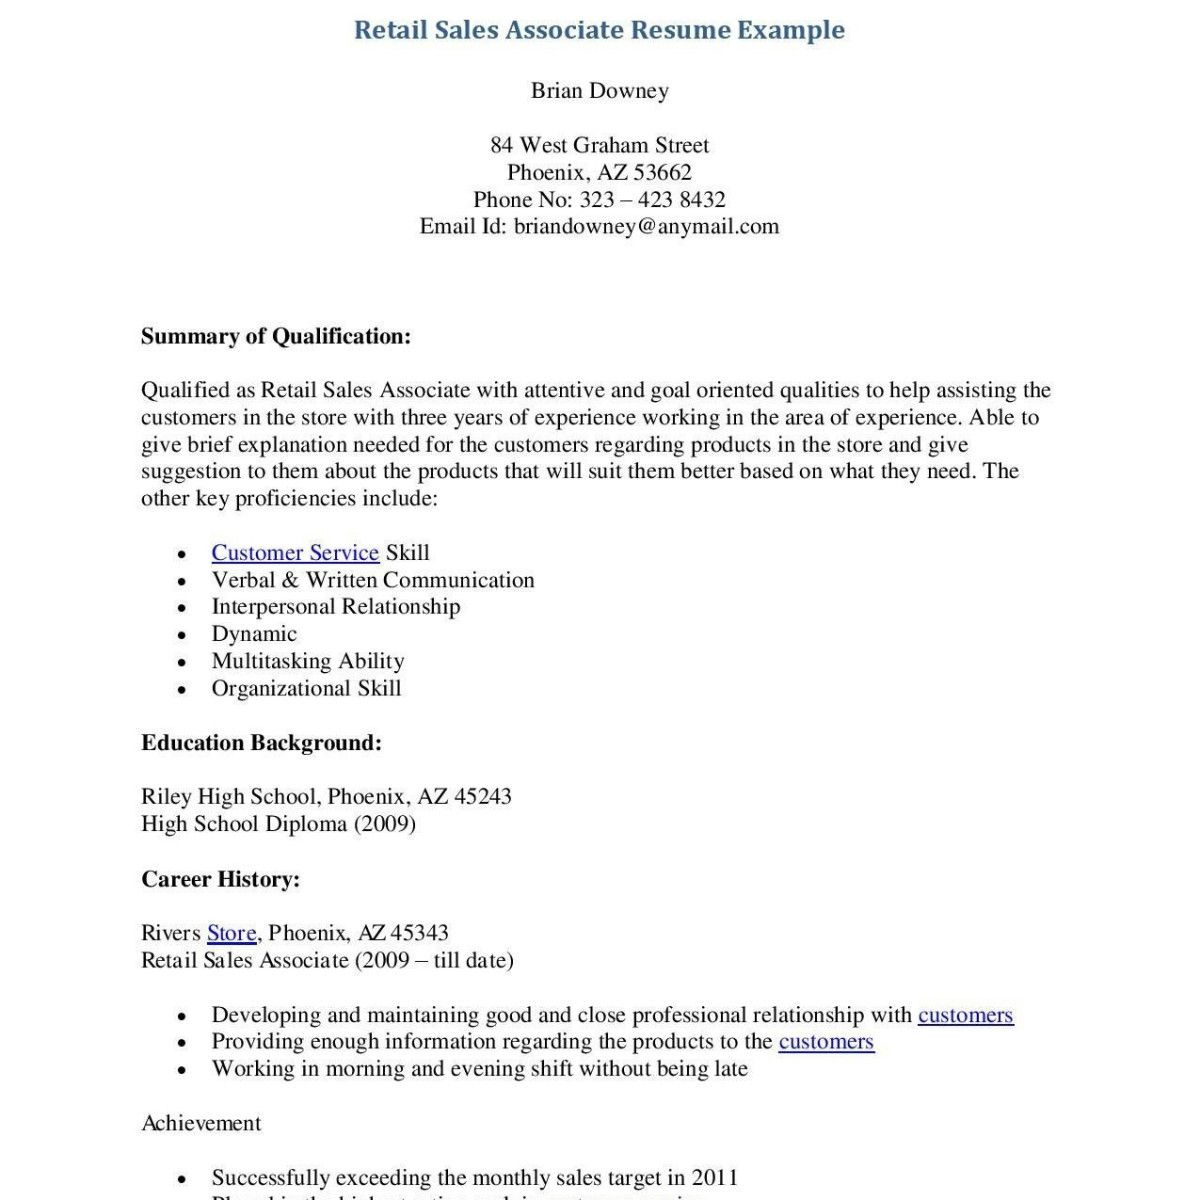 77 Unique Photography Of Examples Of Resumes For Retail Sales Associate Resume Examples Resume Sample Resume Format